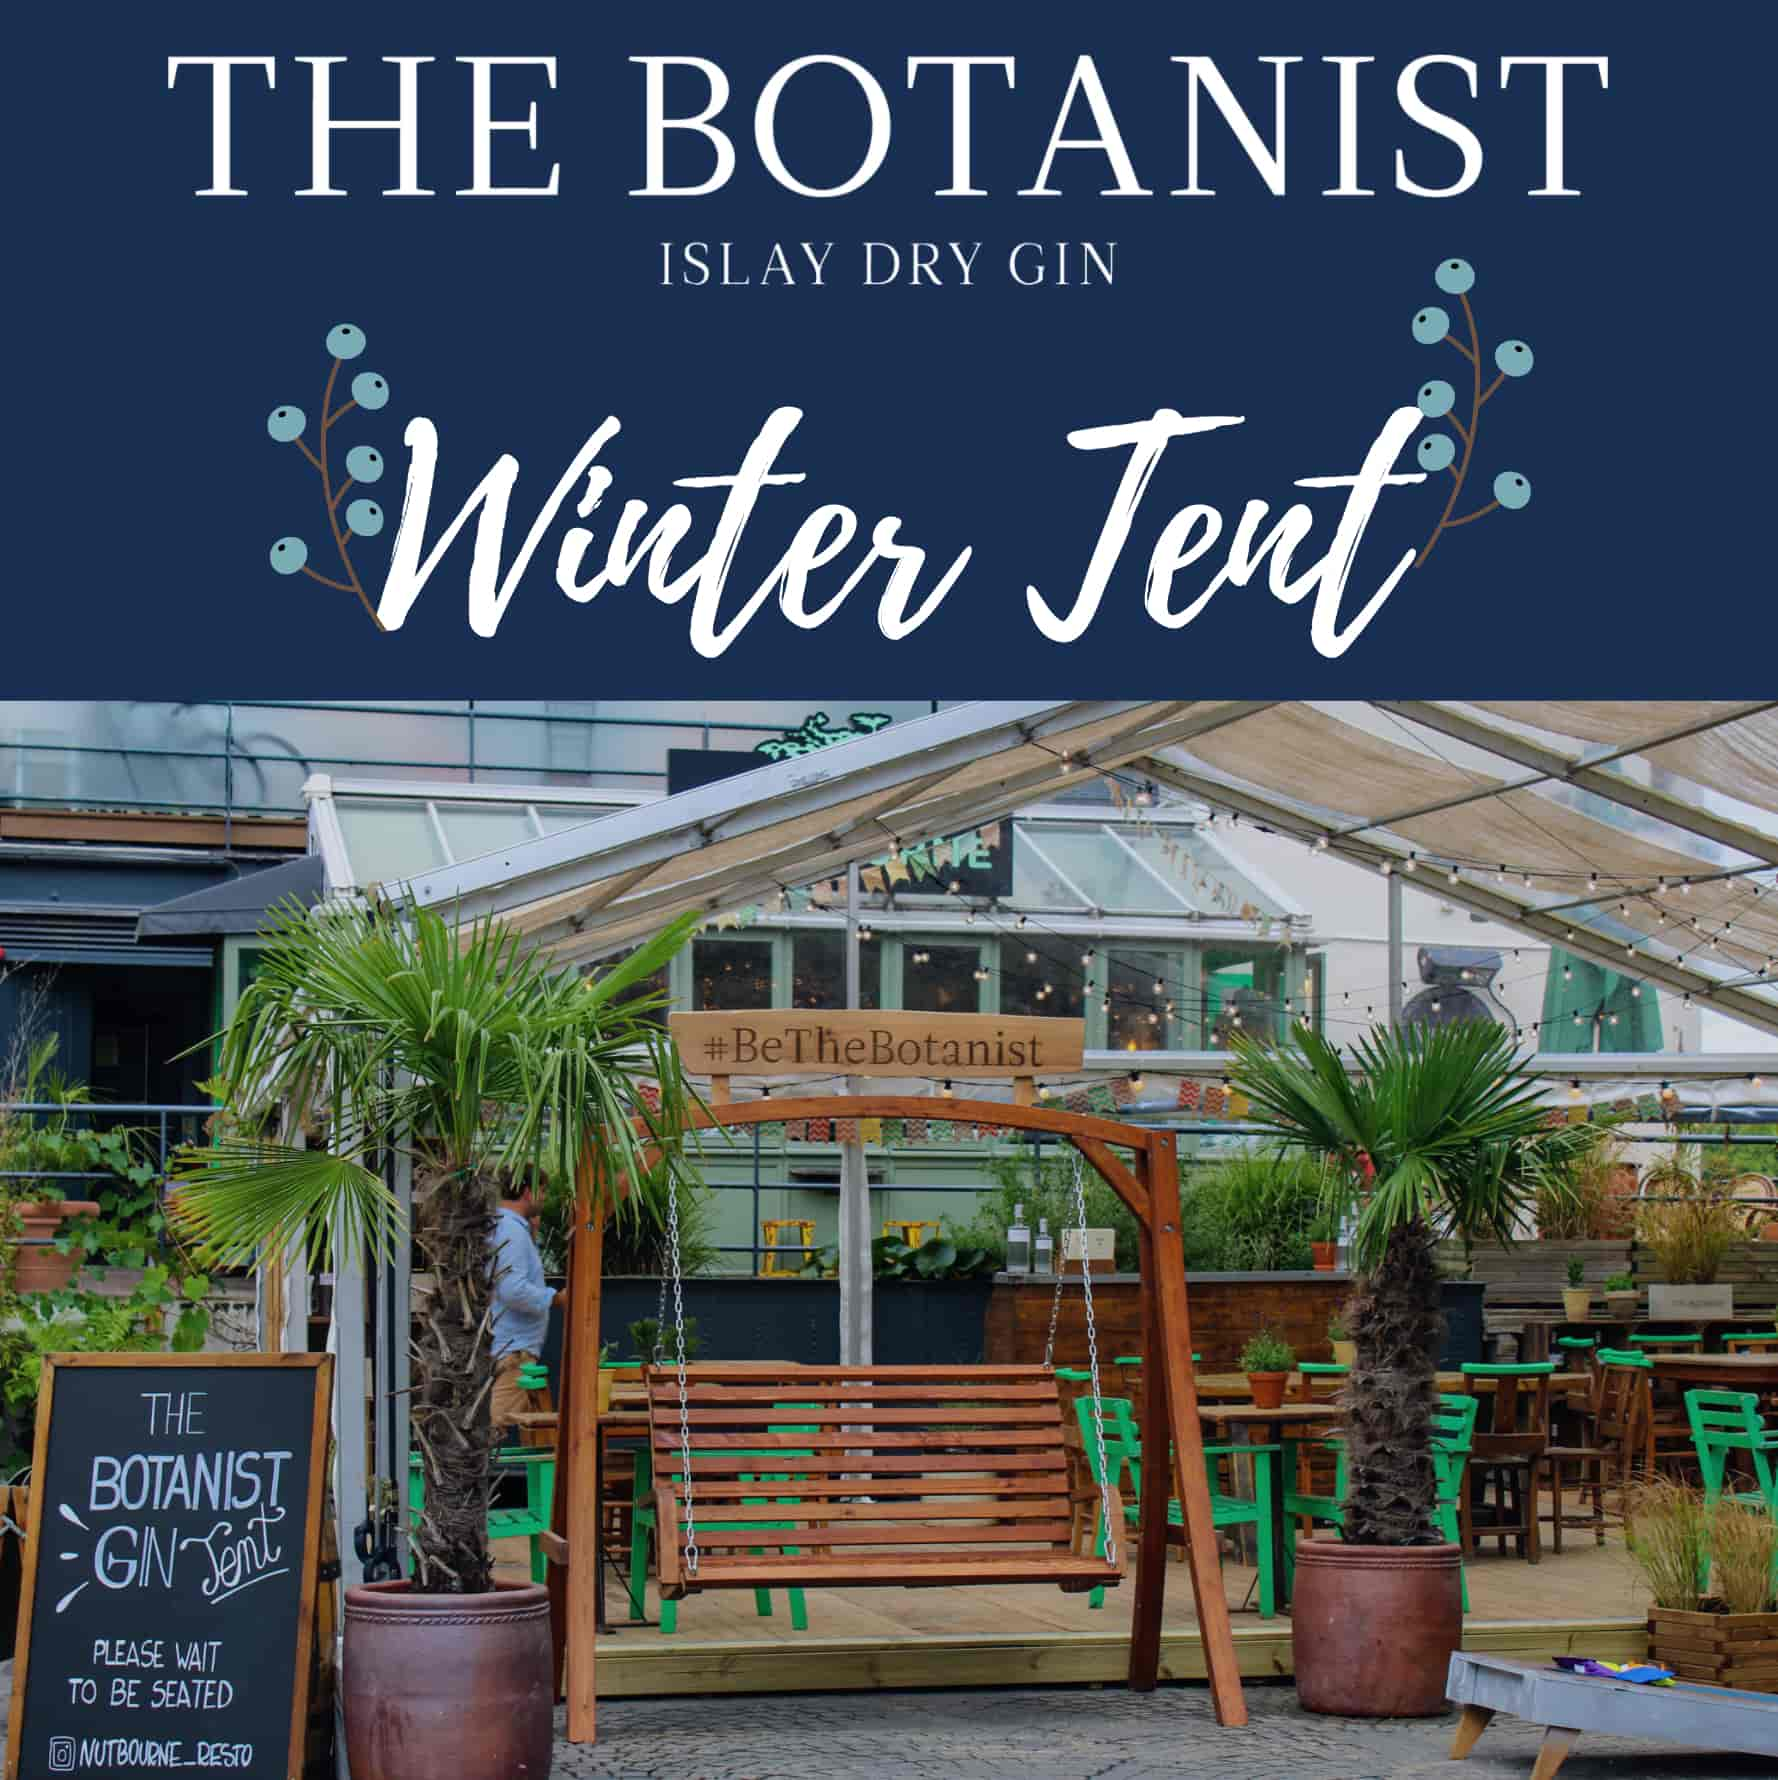 The Botanist x Nutbourne